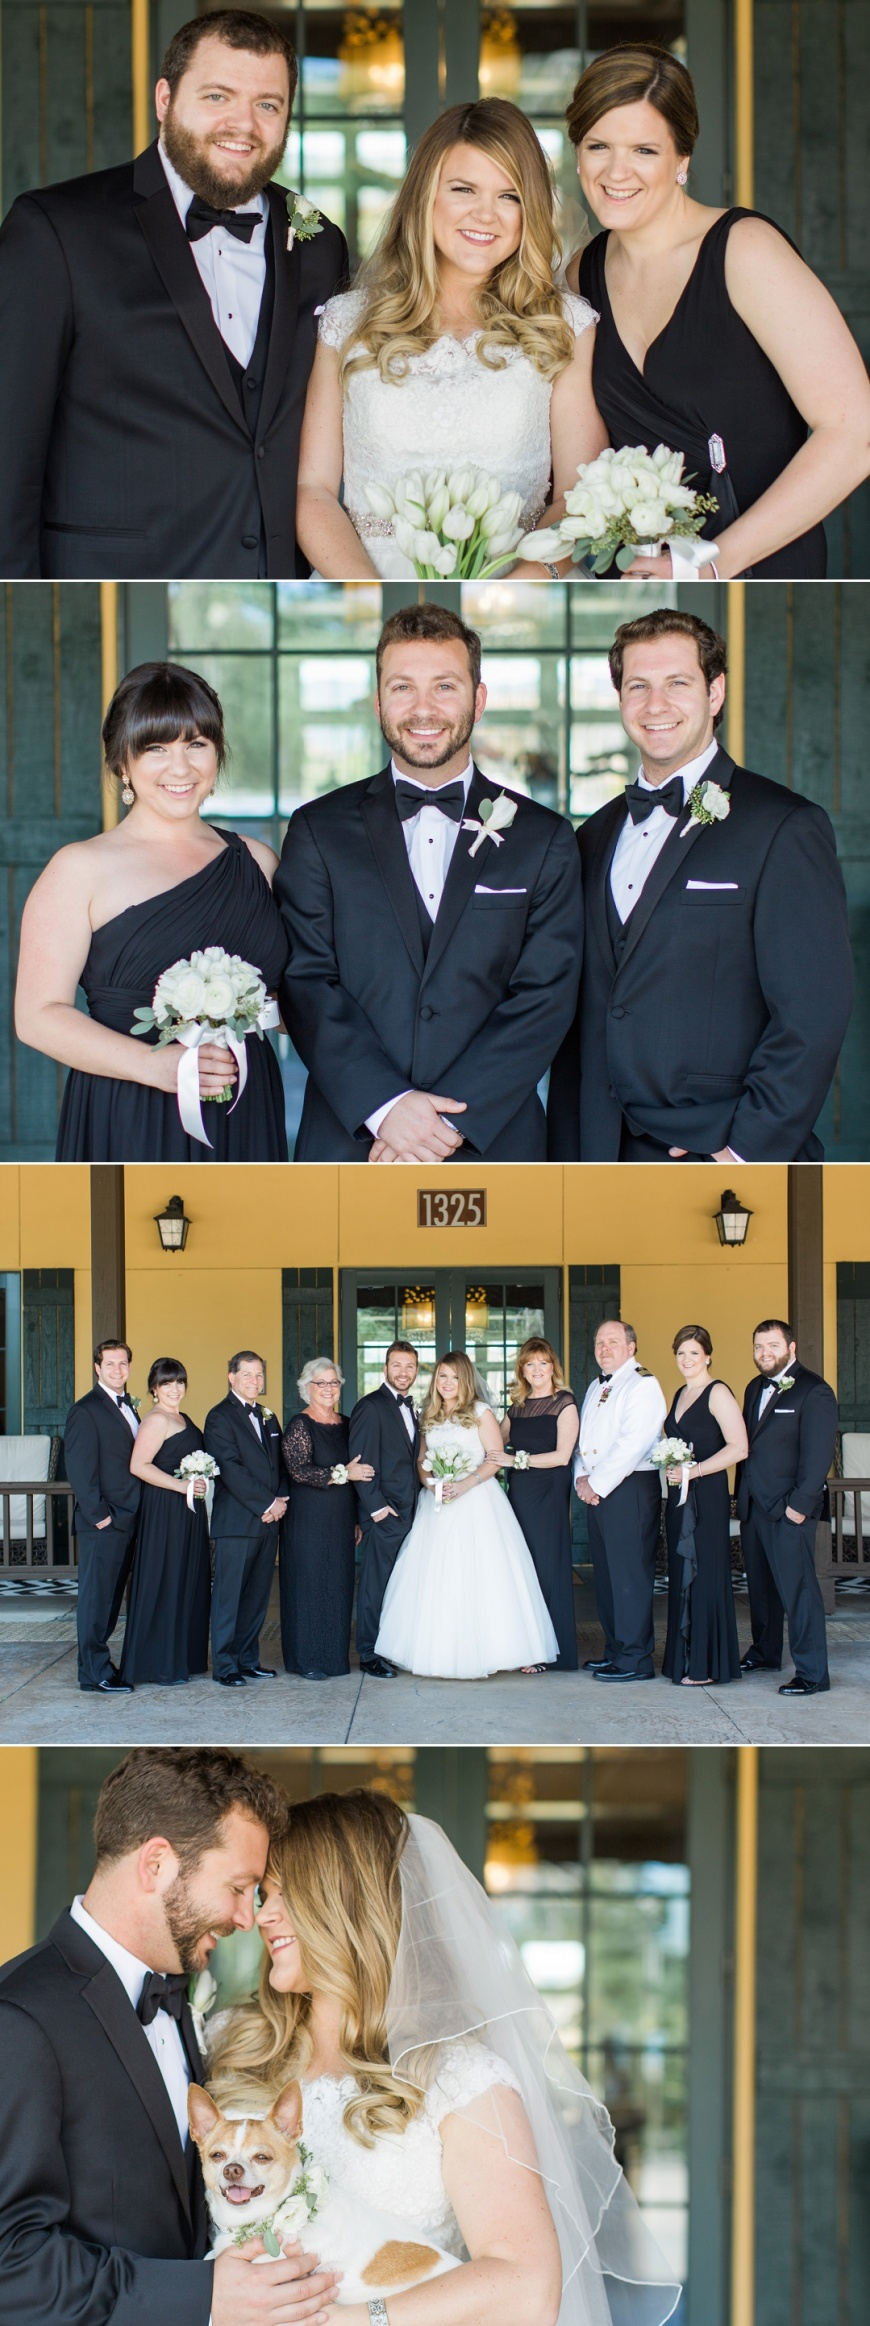 Katie_Jeff_Wedding (12).jpg